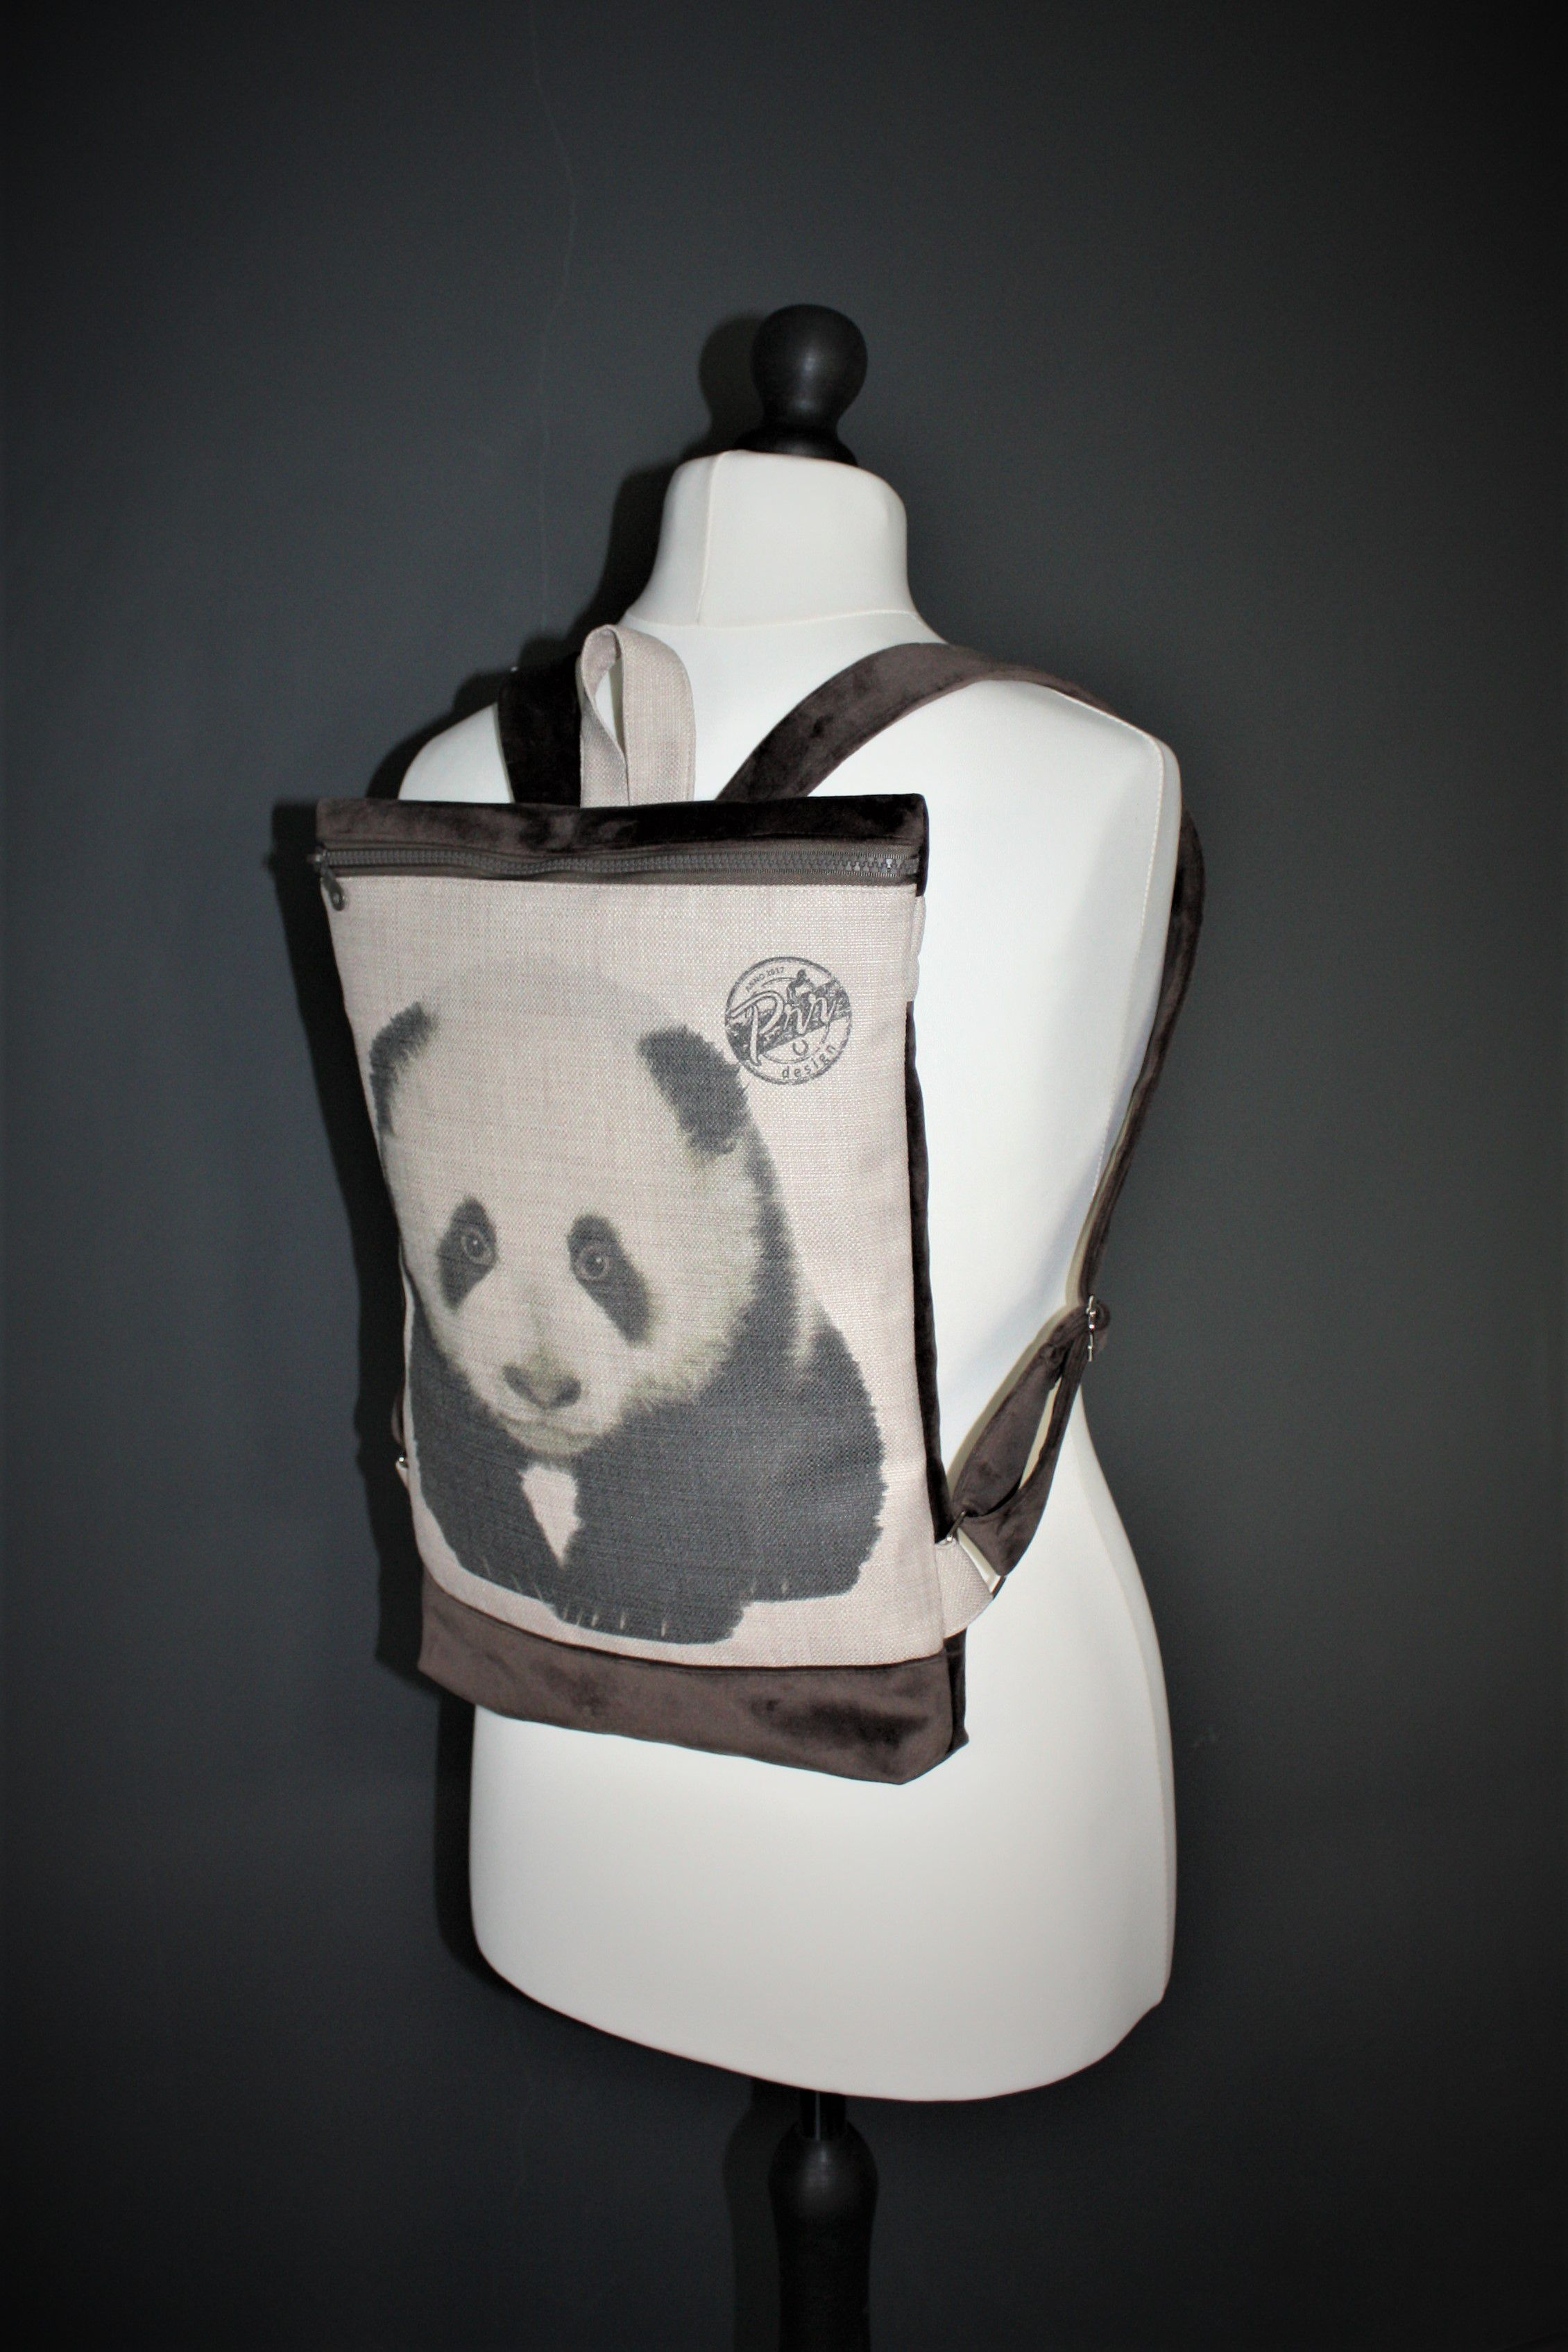 backpacks vegan gift cute rucksack girls women panda bear cutest backpack minimalist